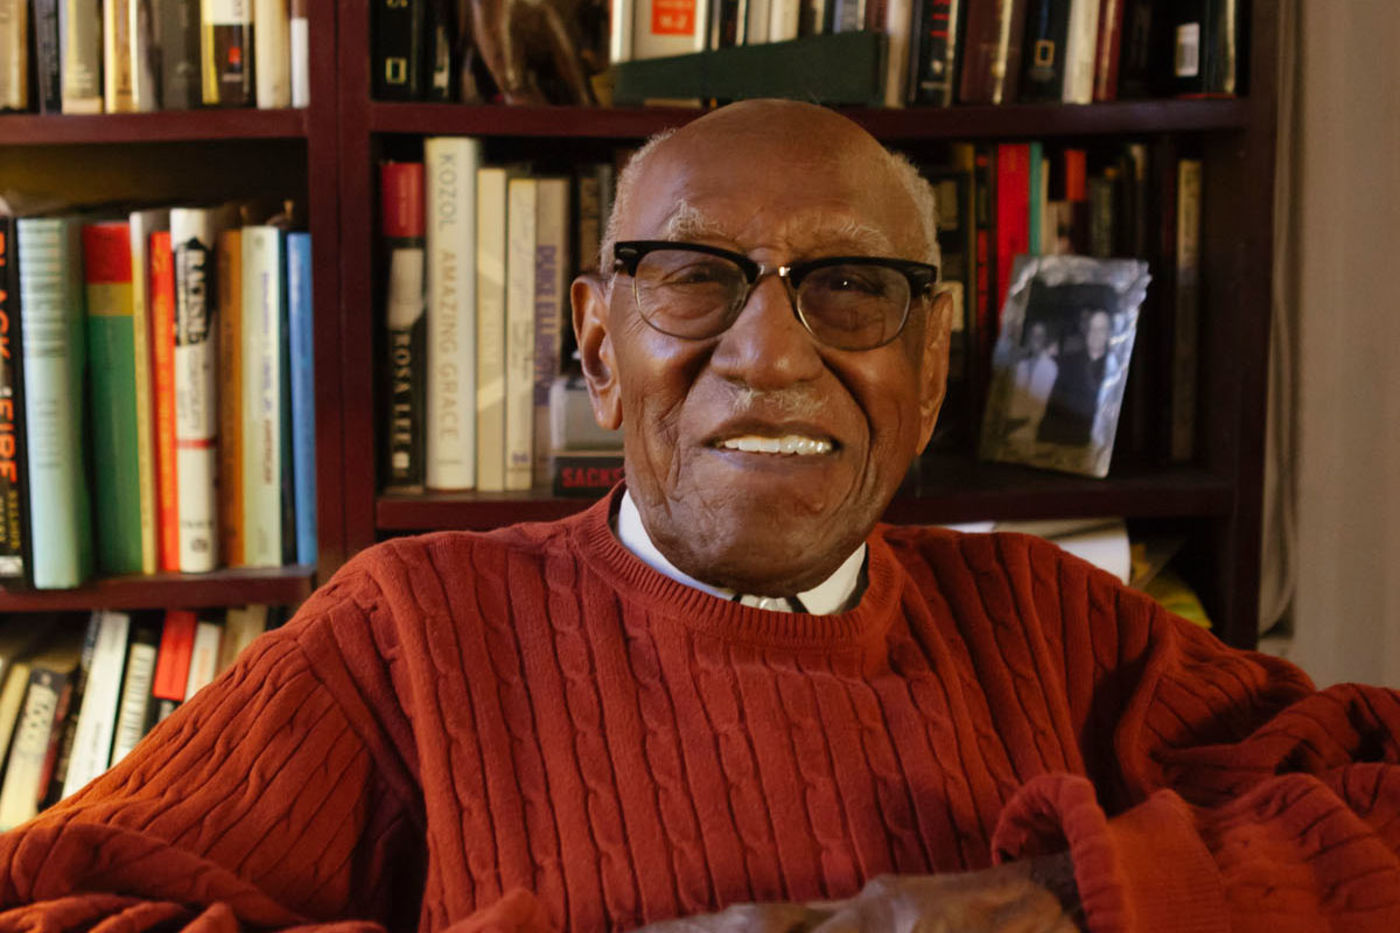 Timuel Black, smiling, sits in front of a bookshelf in his home. He wears black browline style glasses, a white collared shirt, and a red sweater.